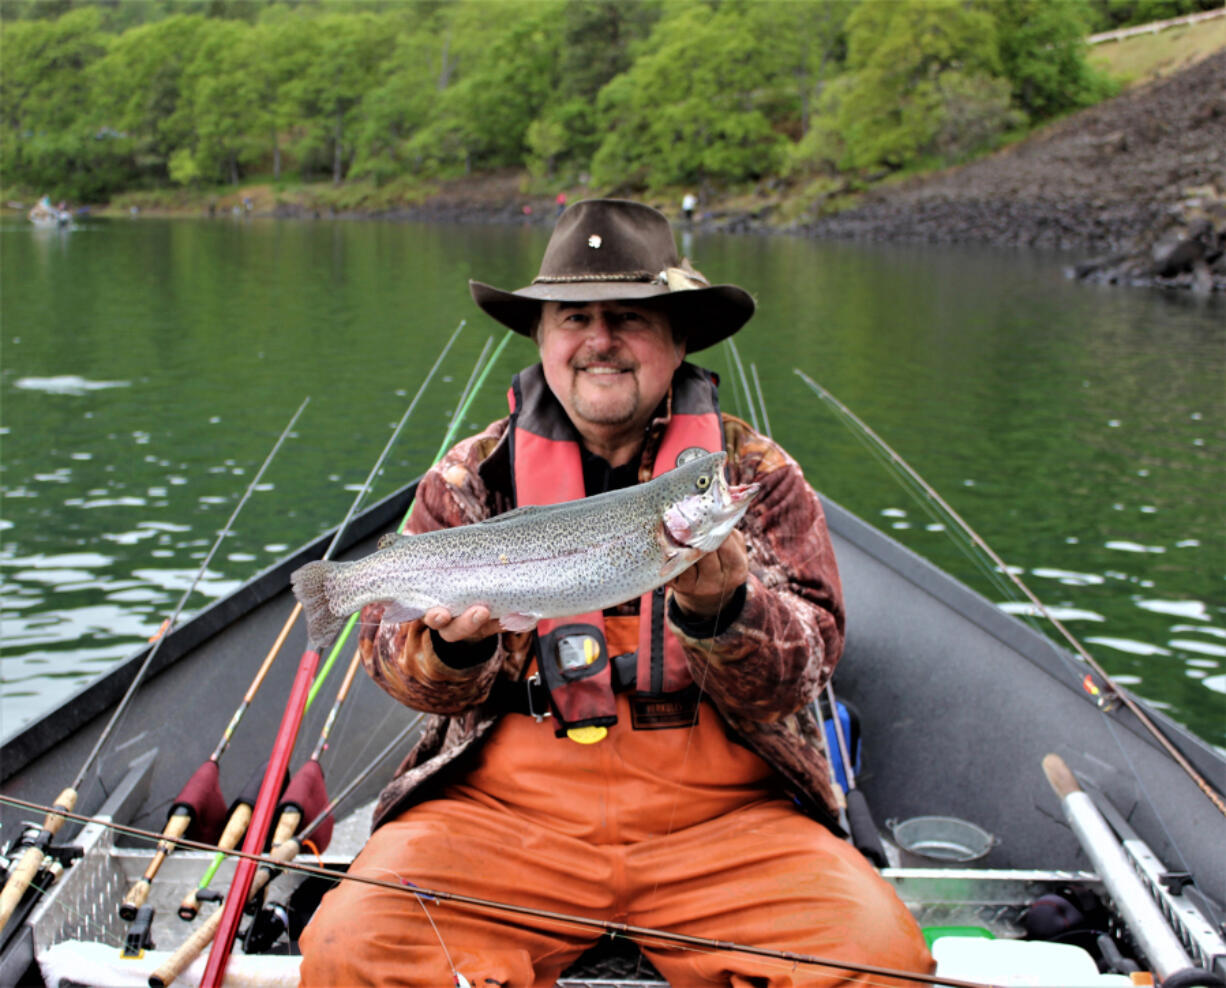 Buzz Ramsey with a brooder rainbow trout he caught while fishing Rowland Lake last Saturday during the spring trout opener. A number of other anglers were also lucky enough to find one of the big boys.